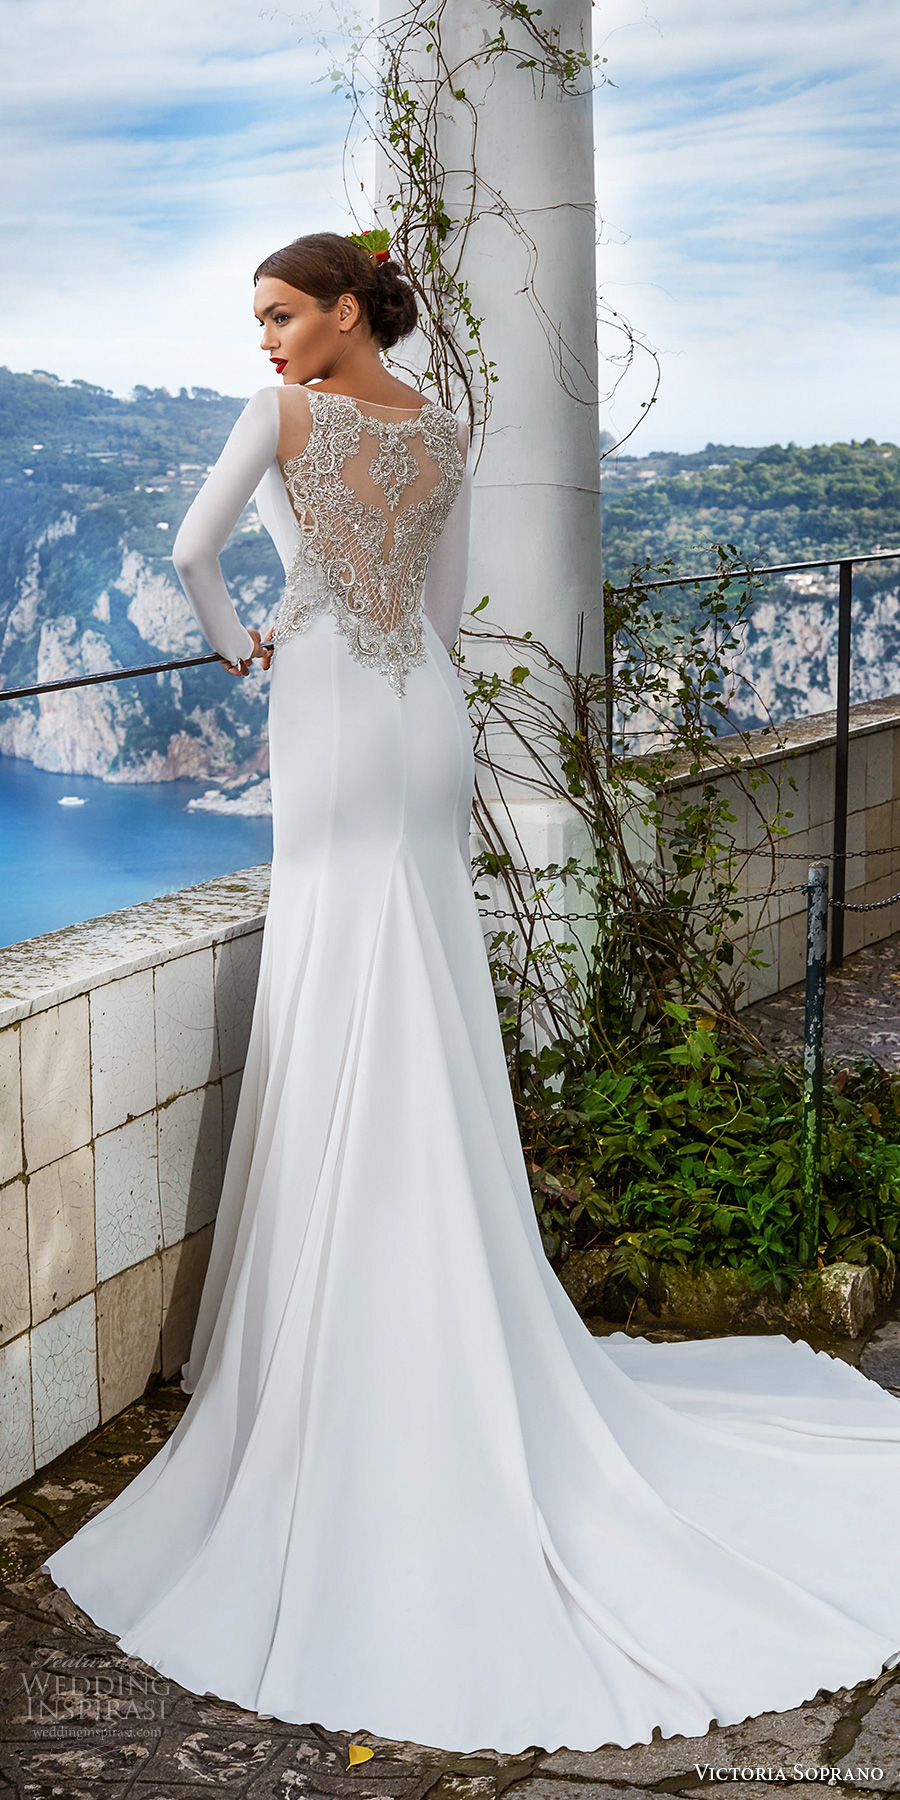 victoria soprano 2017 bridal long sleeves bateau neck simple clean elegant sophiscated side slit sheath wedding dress lace back chapel train (estella) bv